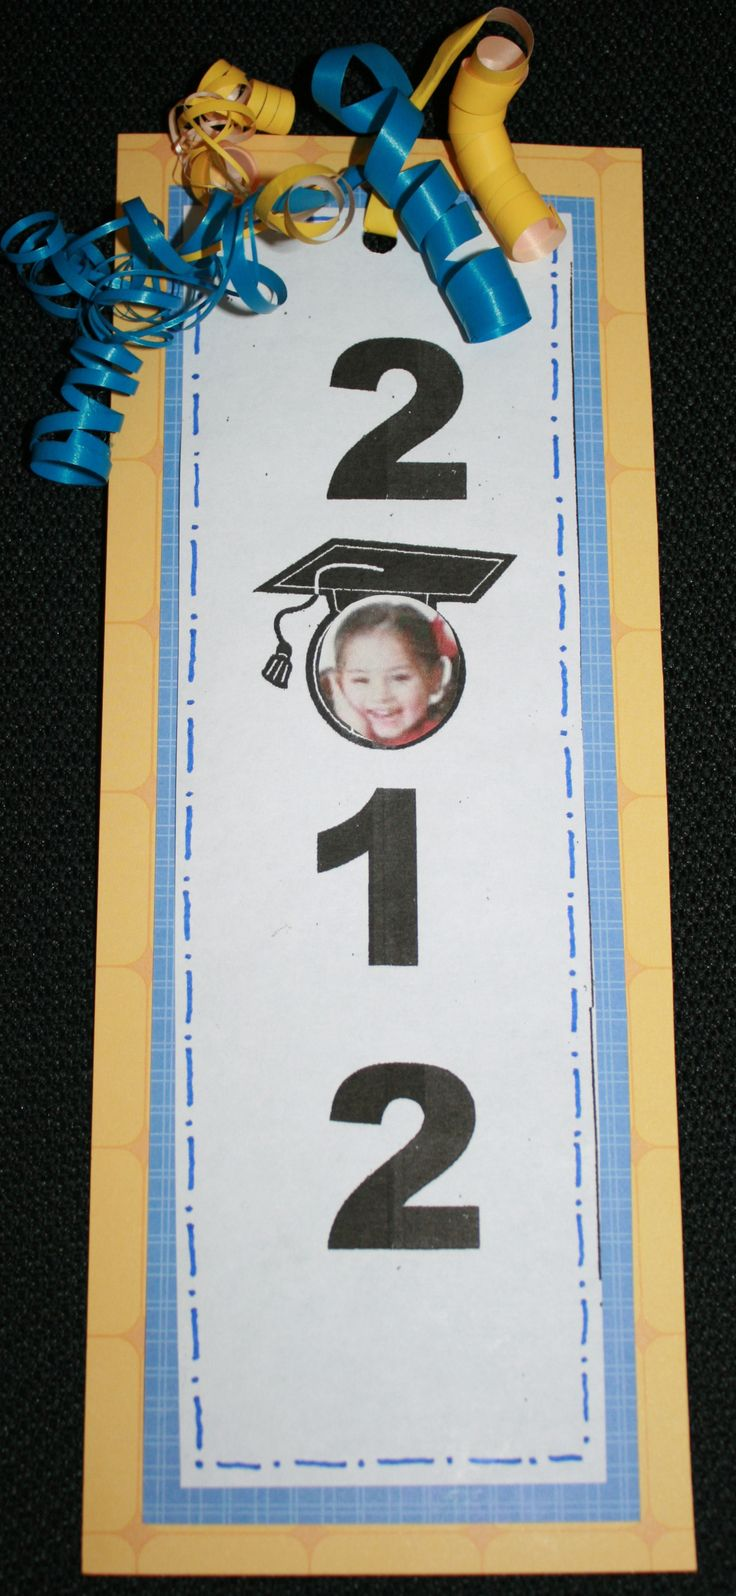 Part of a 36-page graduation activities packet that includes 12 end of the year certificates. FREE